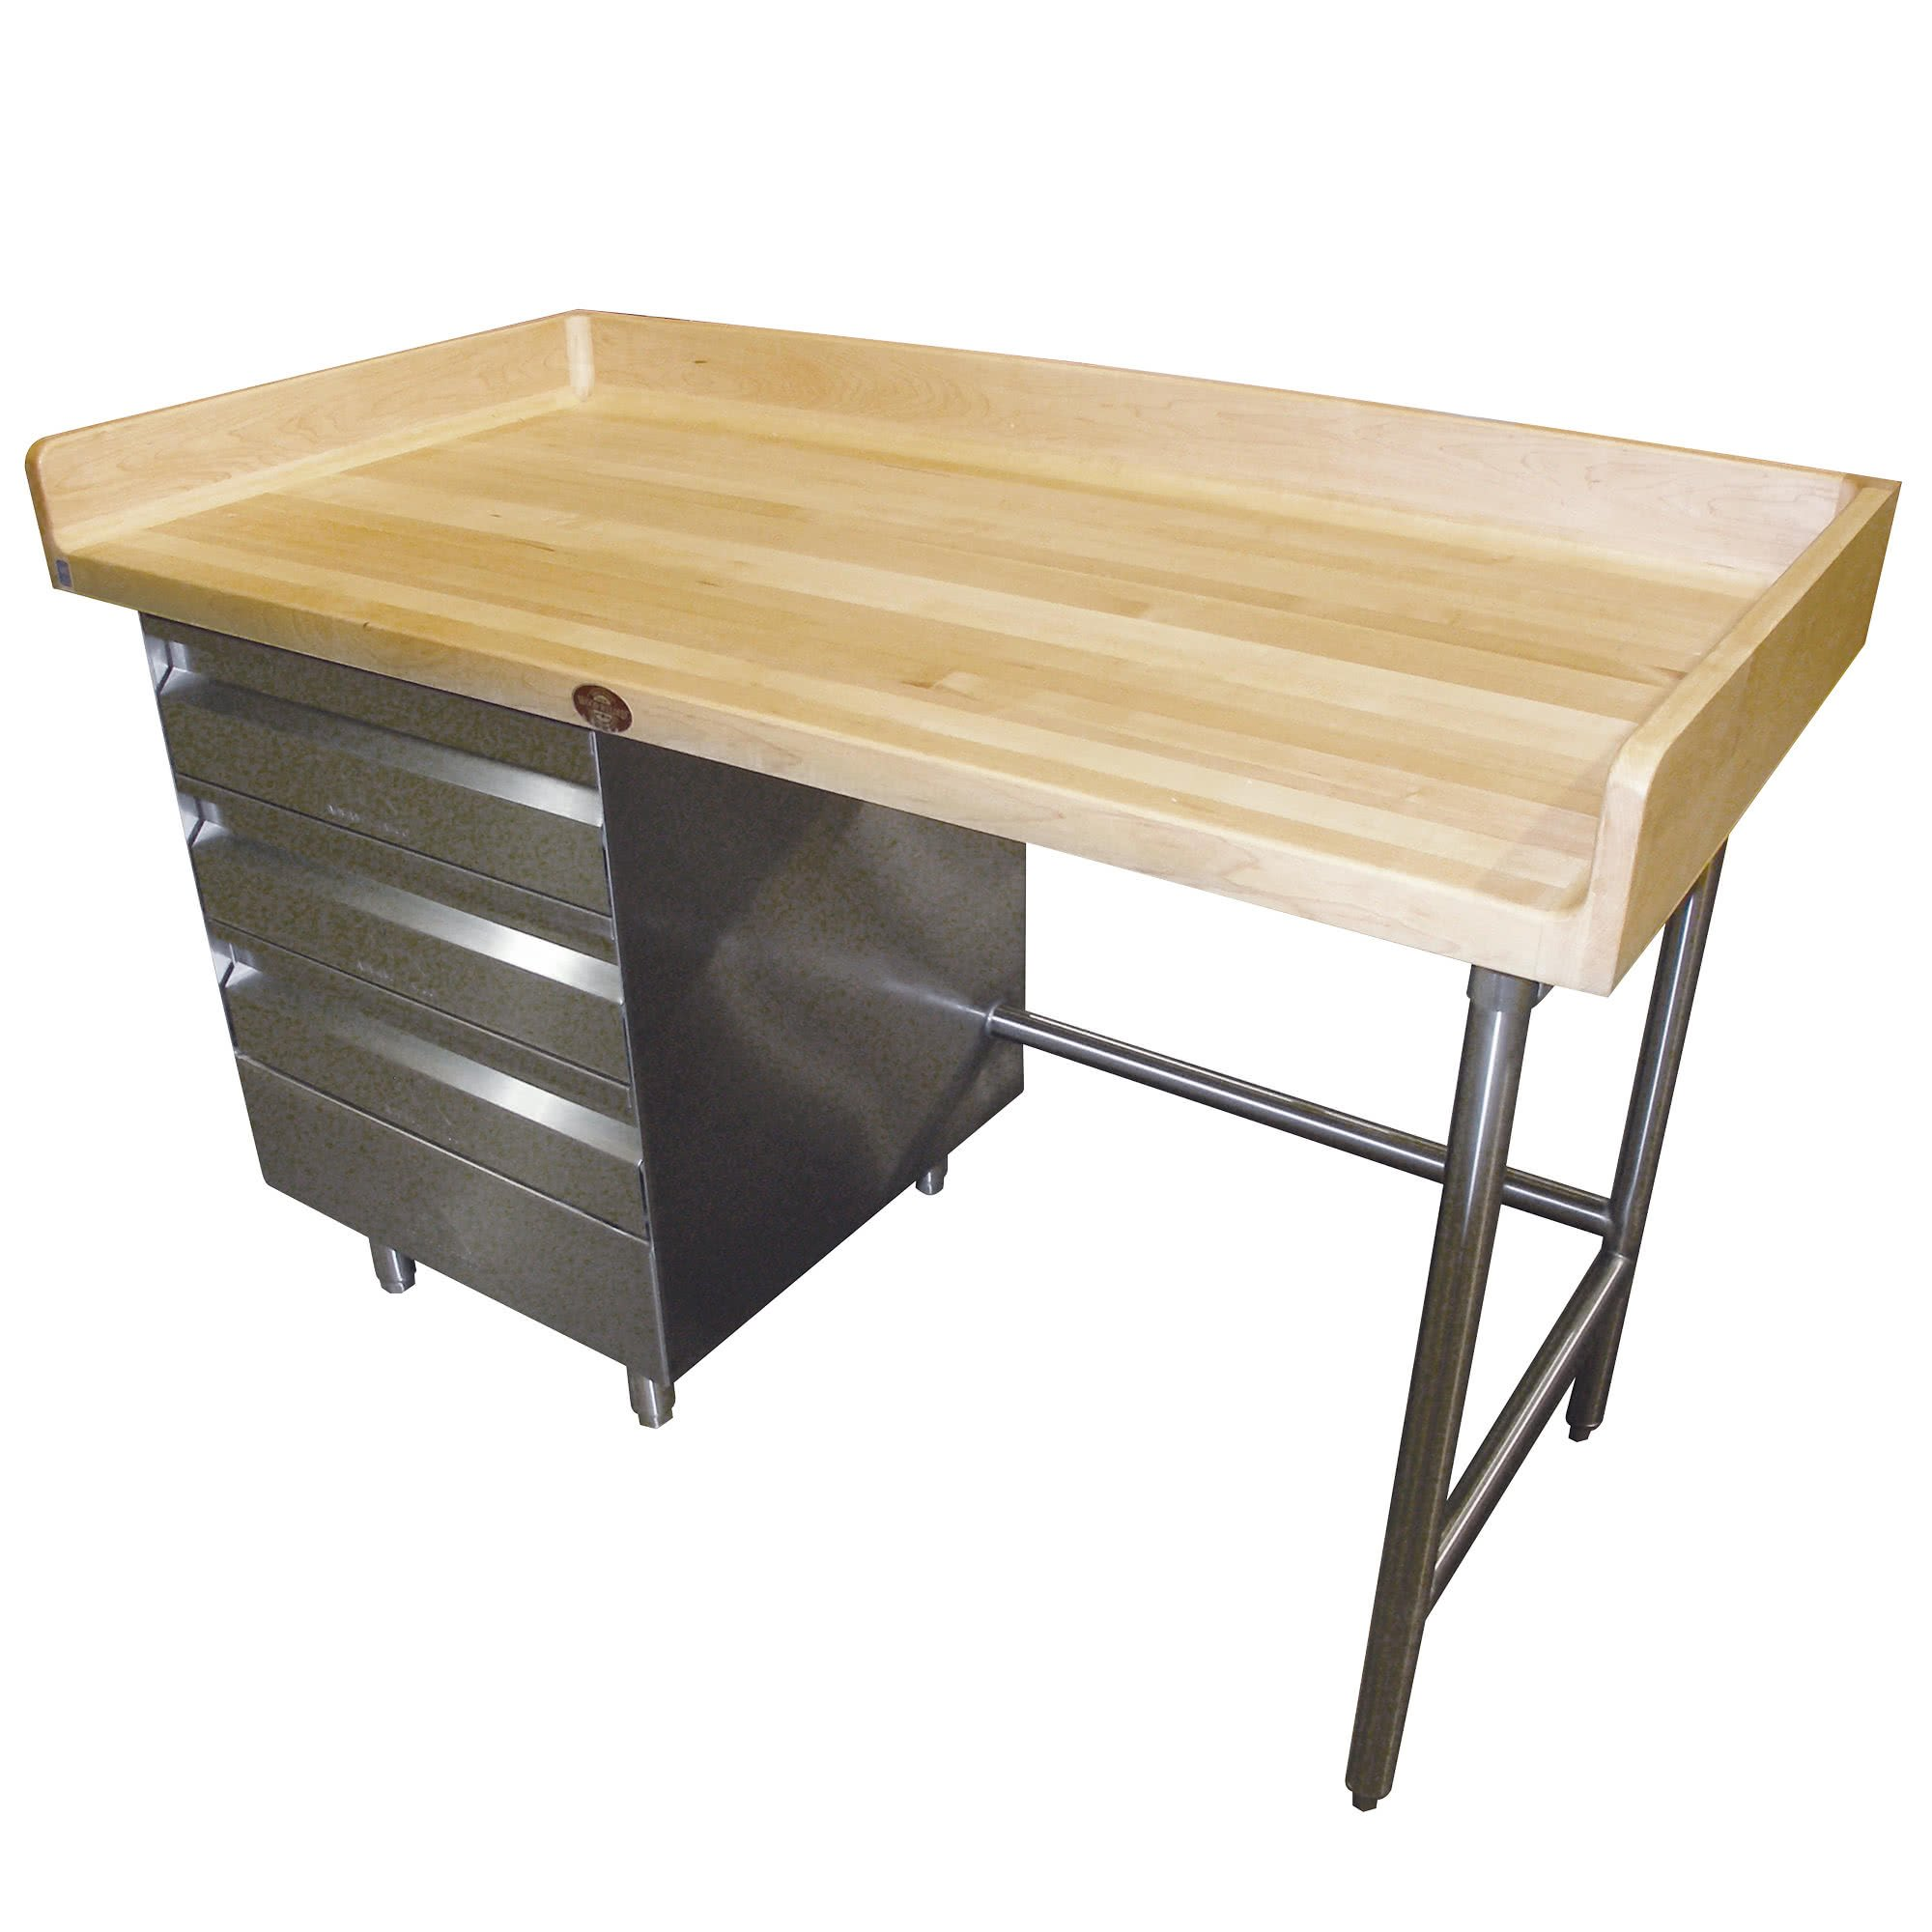 BST-367 Wood Top Baker's Table with Stainless Steel Base and Drawers - 36'' x 84'' By TableTop King